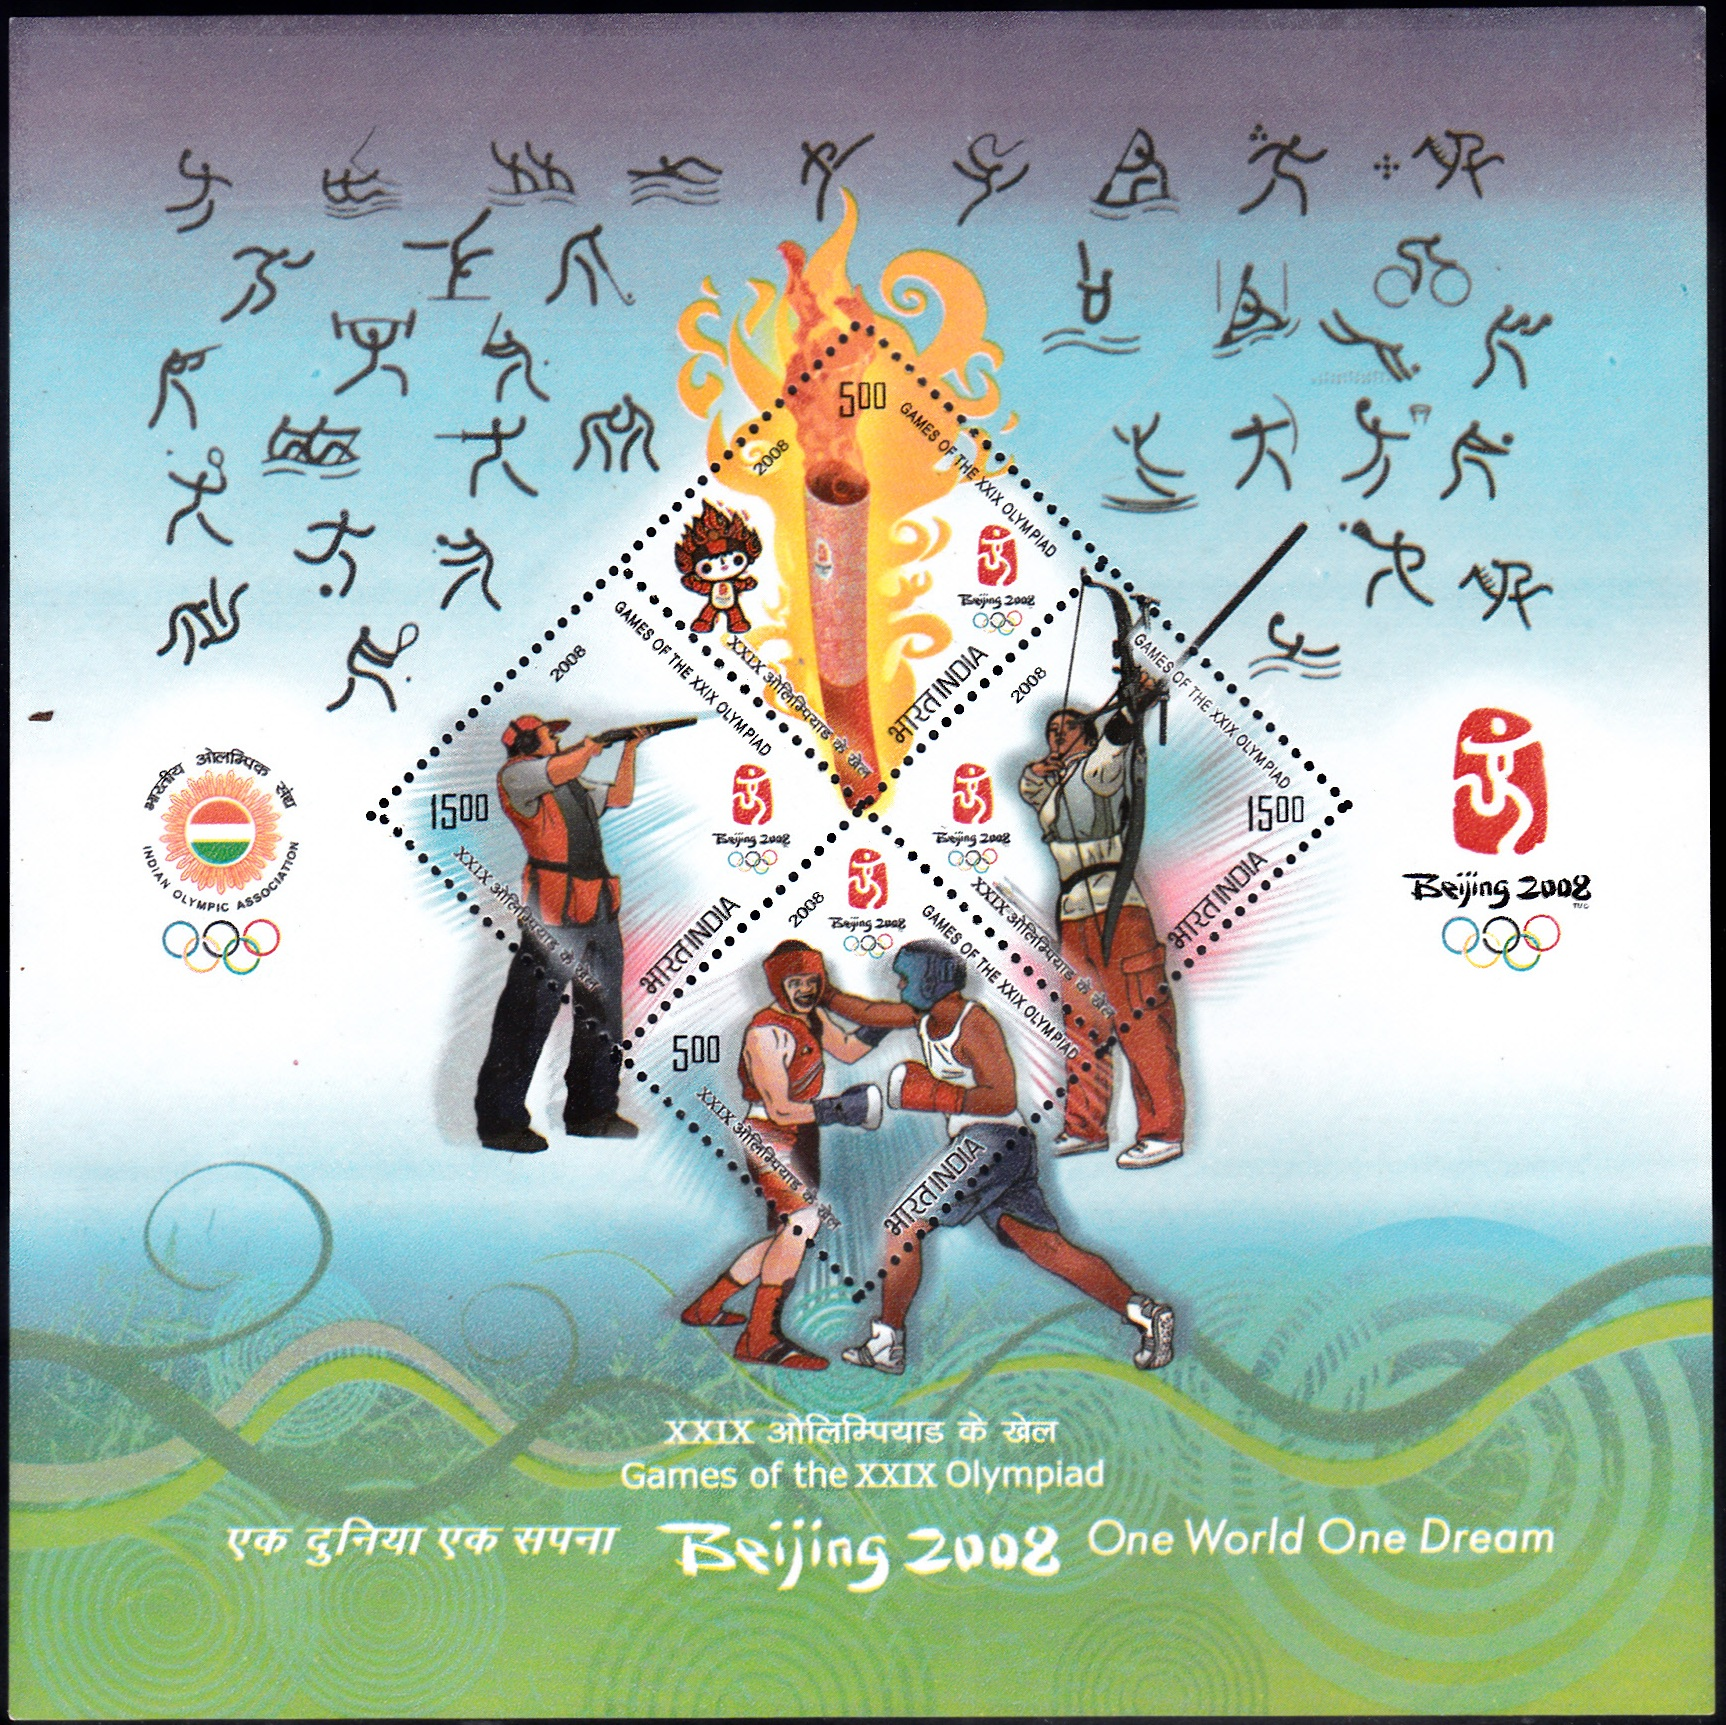 2375 Beijing 2008, Games of the XXIX Olympiad [India Miniture Sheet]